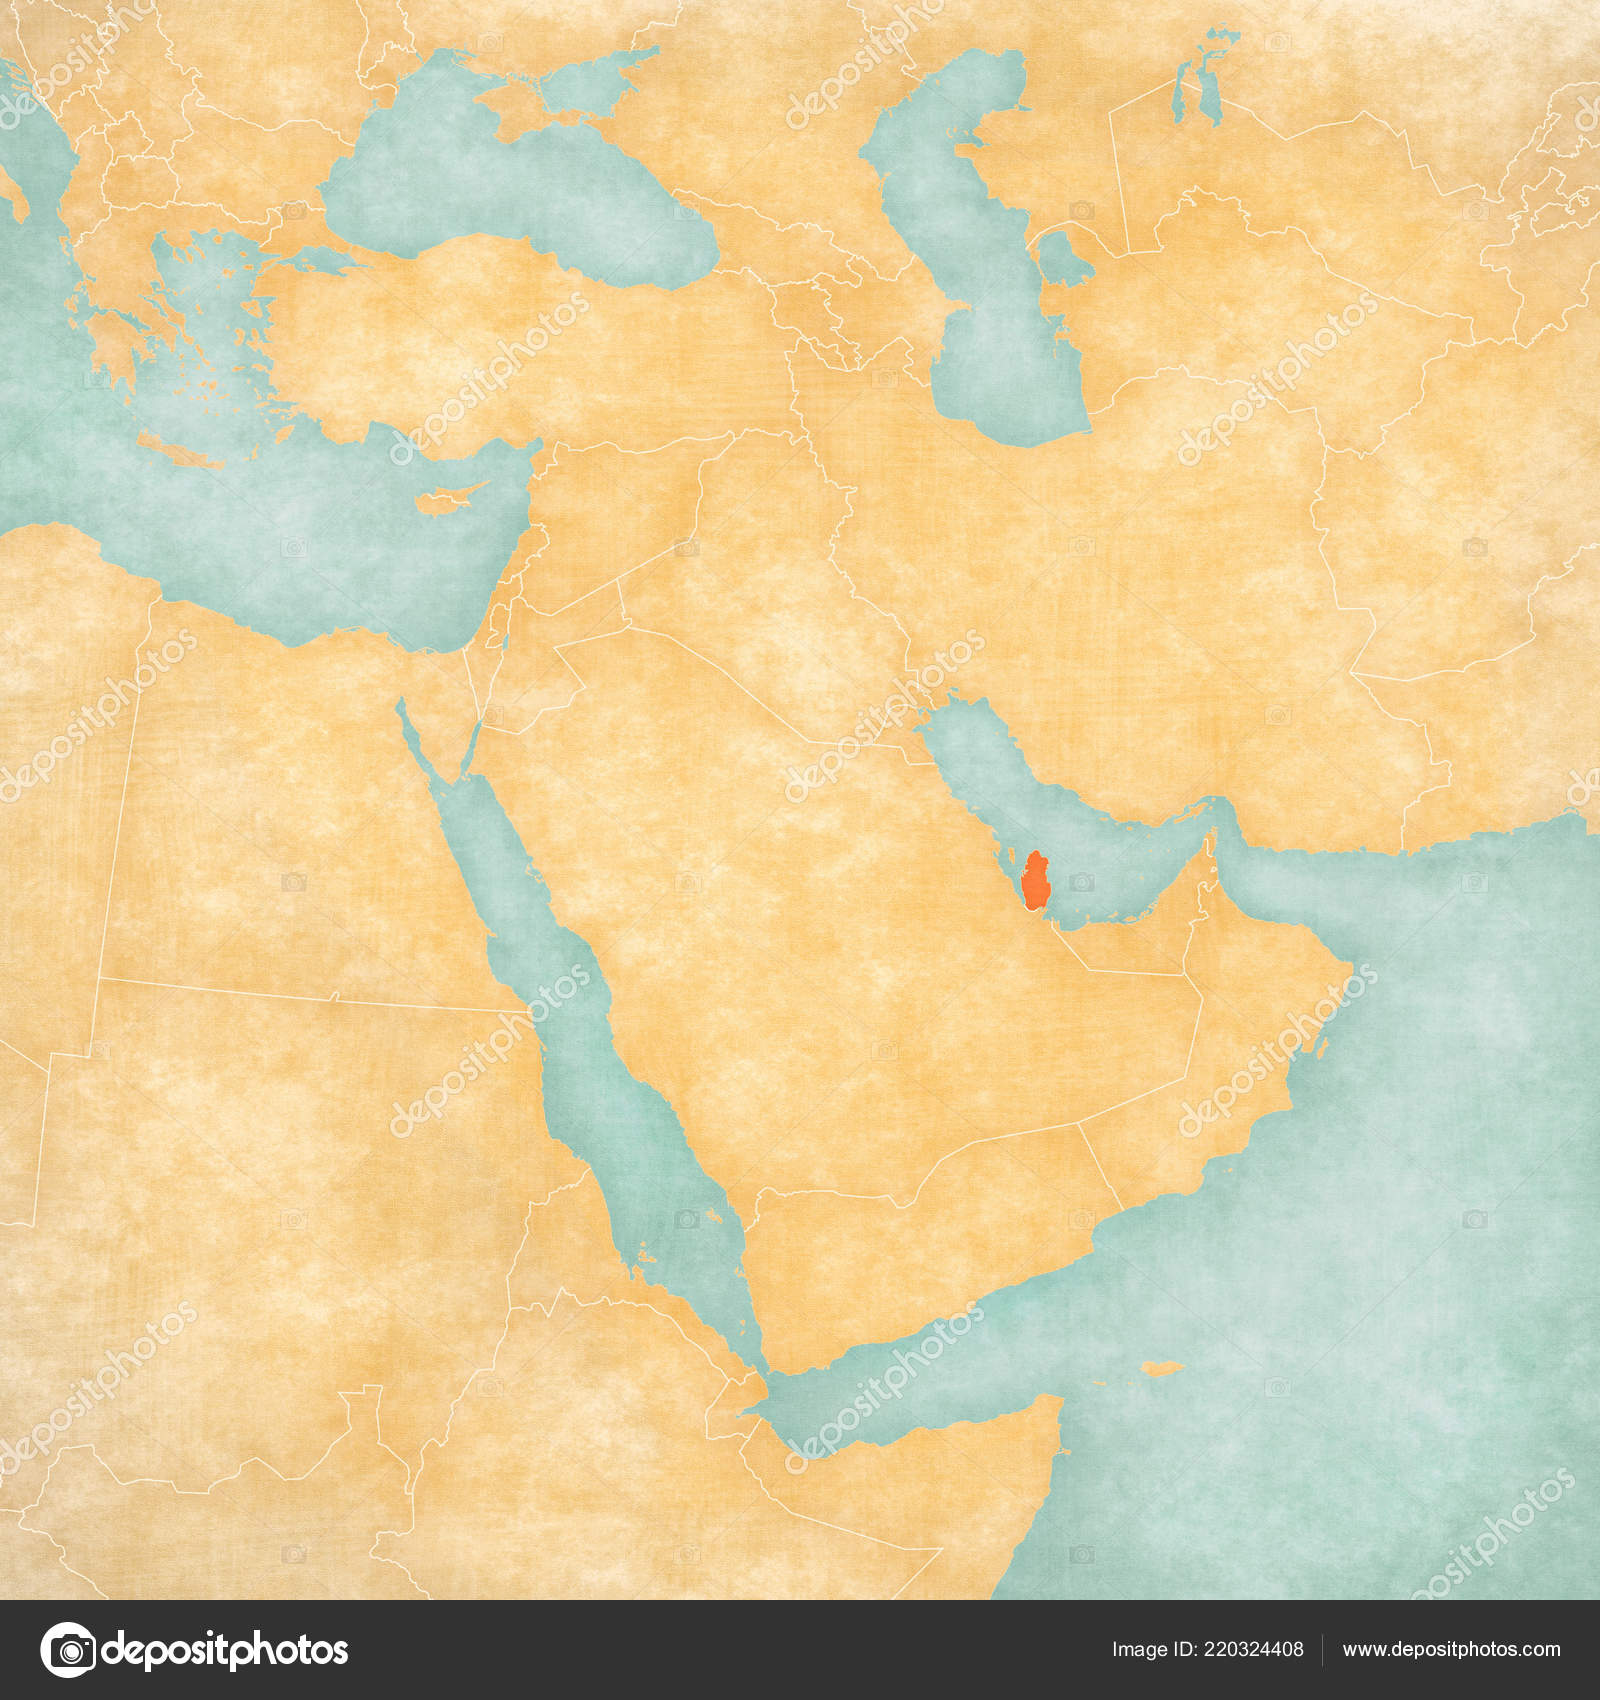 Qatar Map Middle East Western Asia Soft Grunge Vintage Style Stock